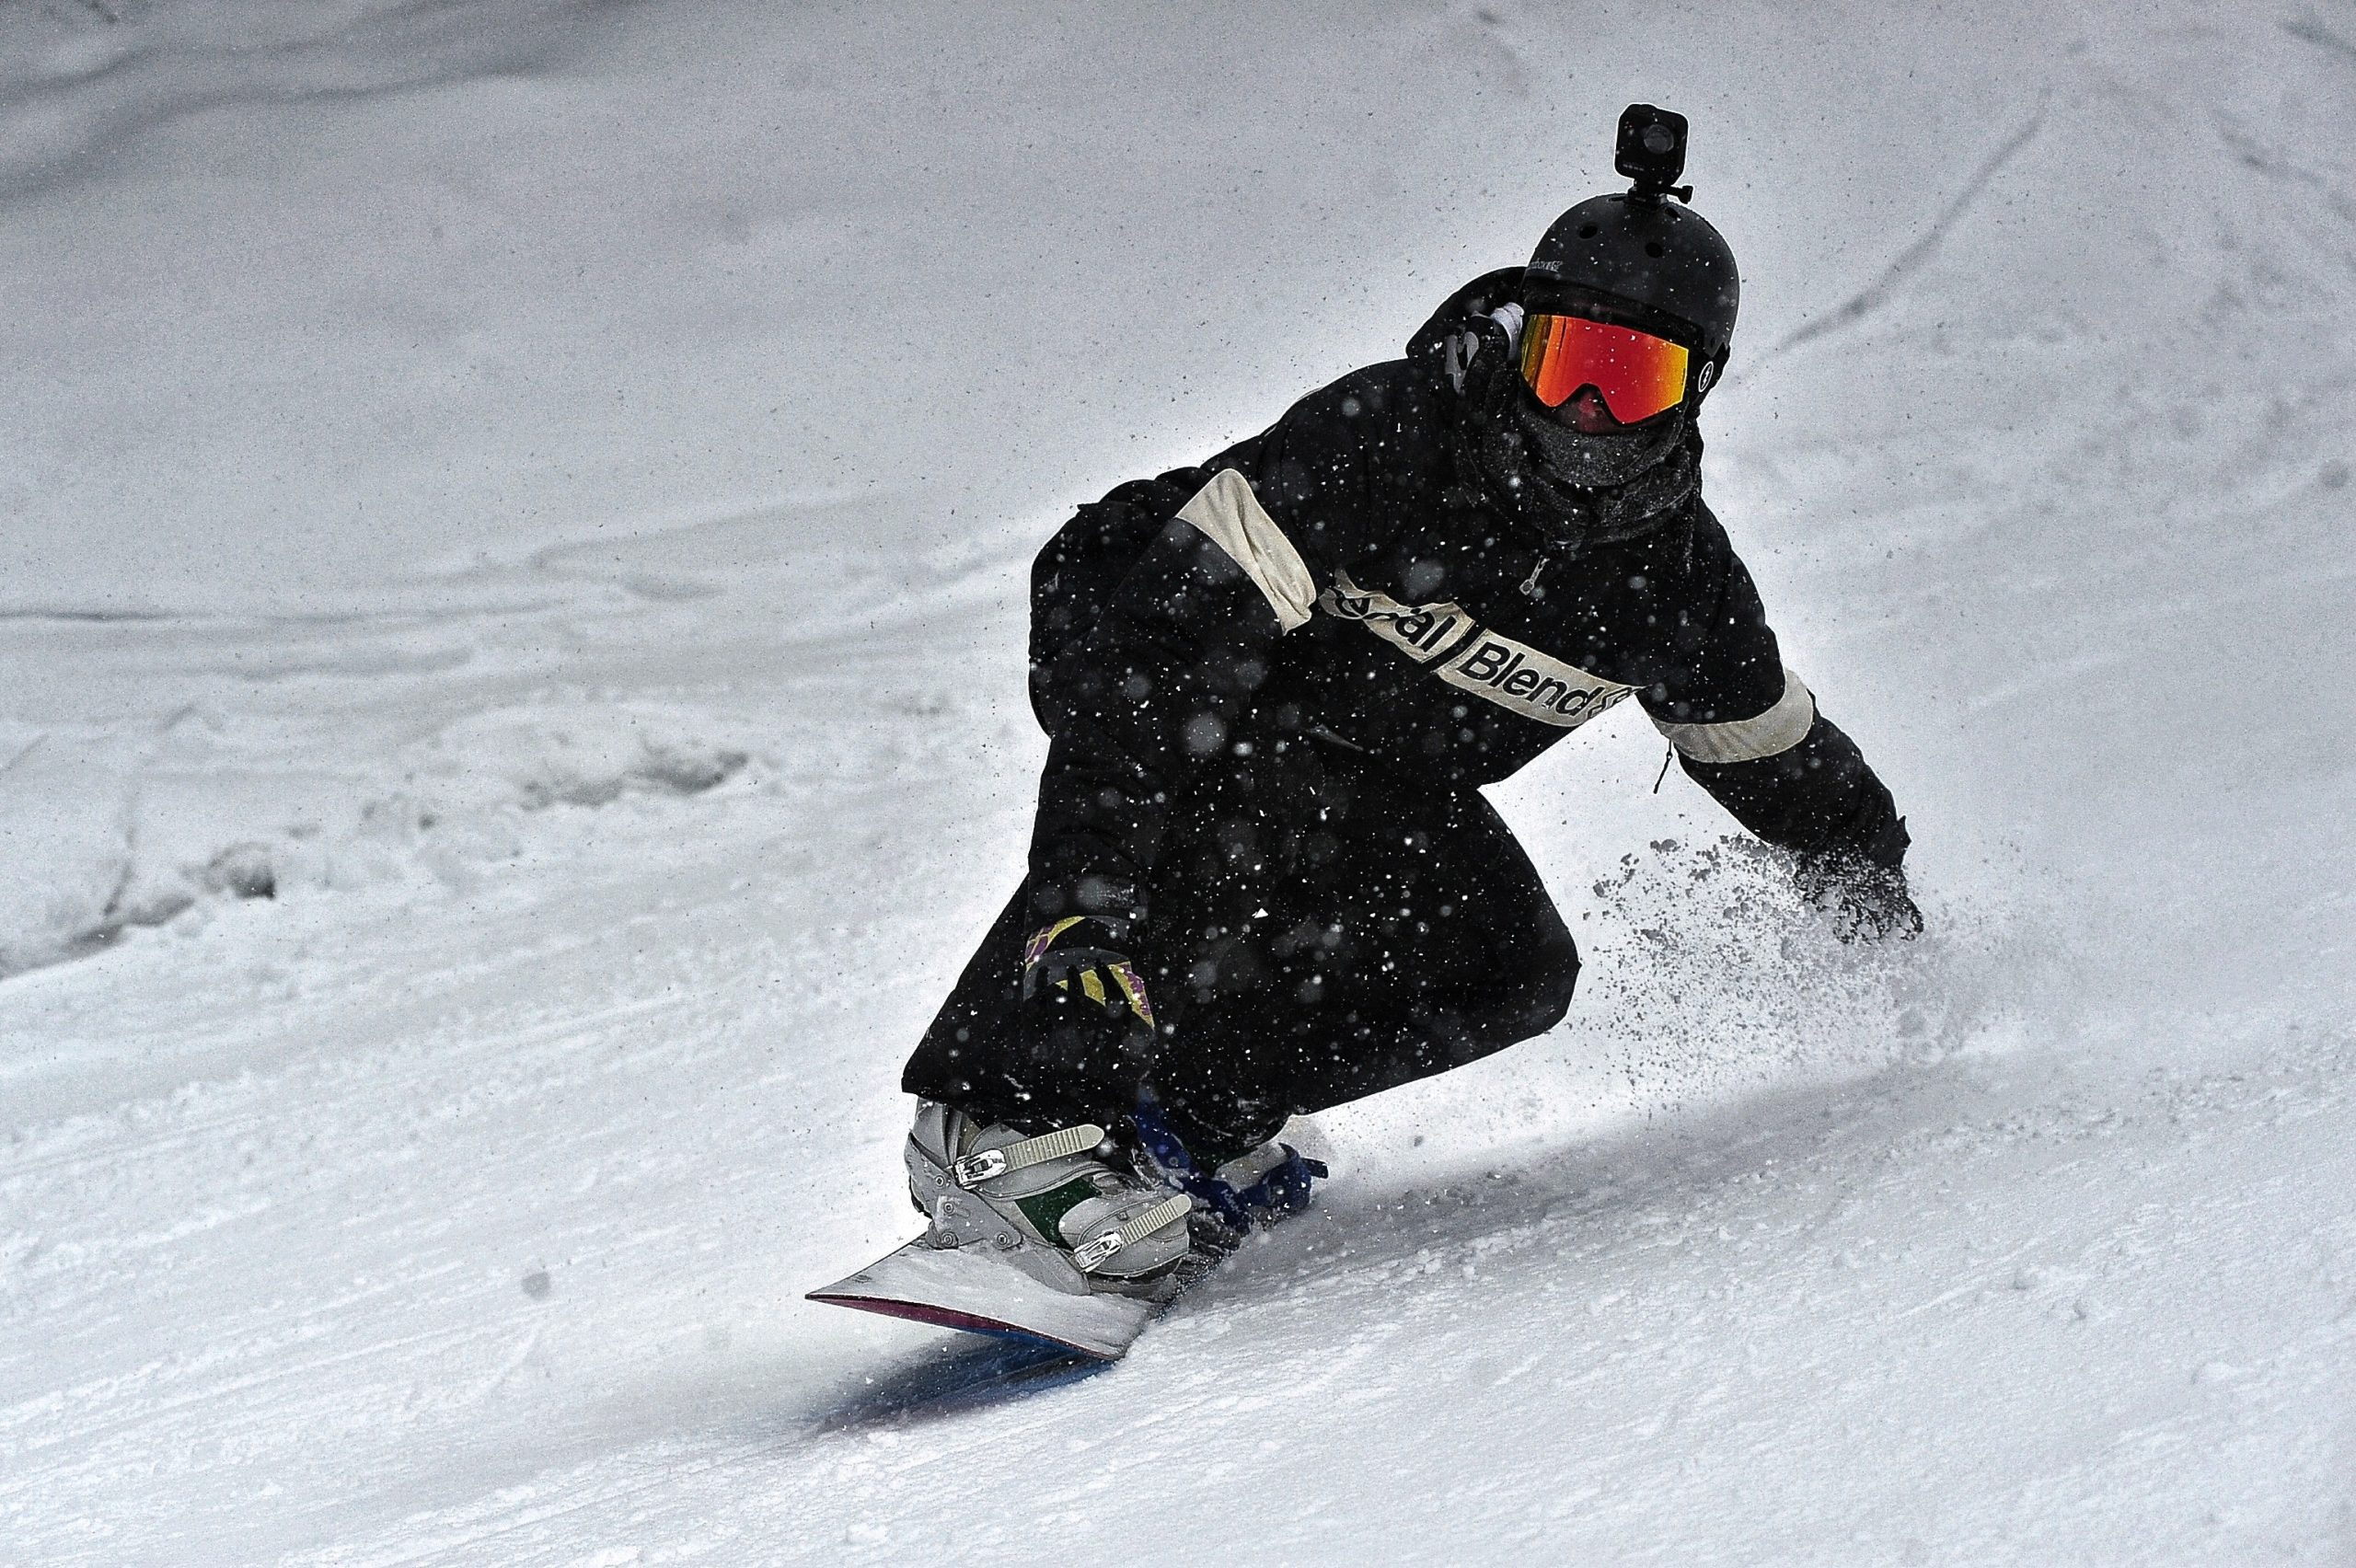 Robin Van Gyn, a snowboarding champion on stepping out of your comfort zone.